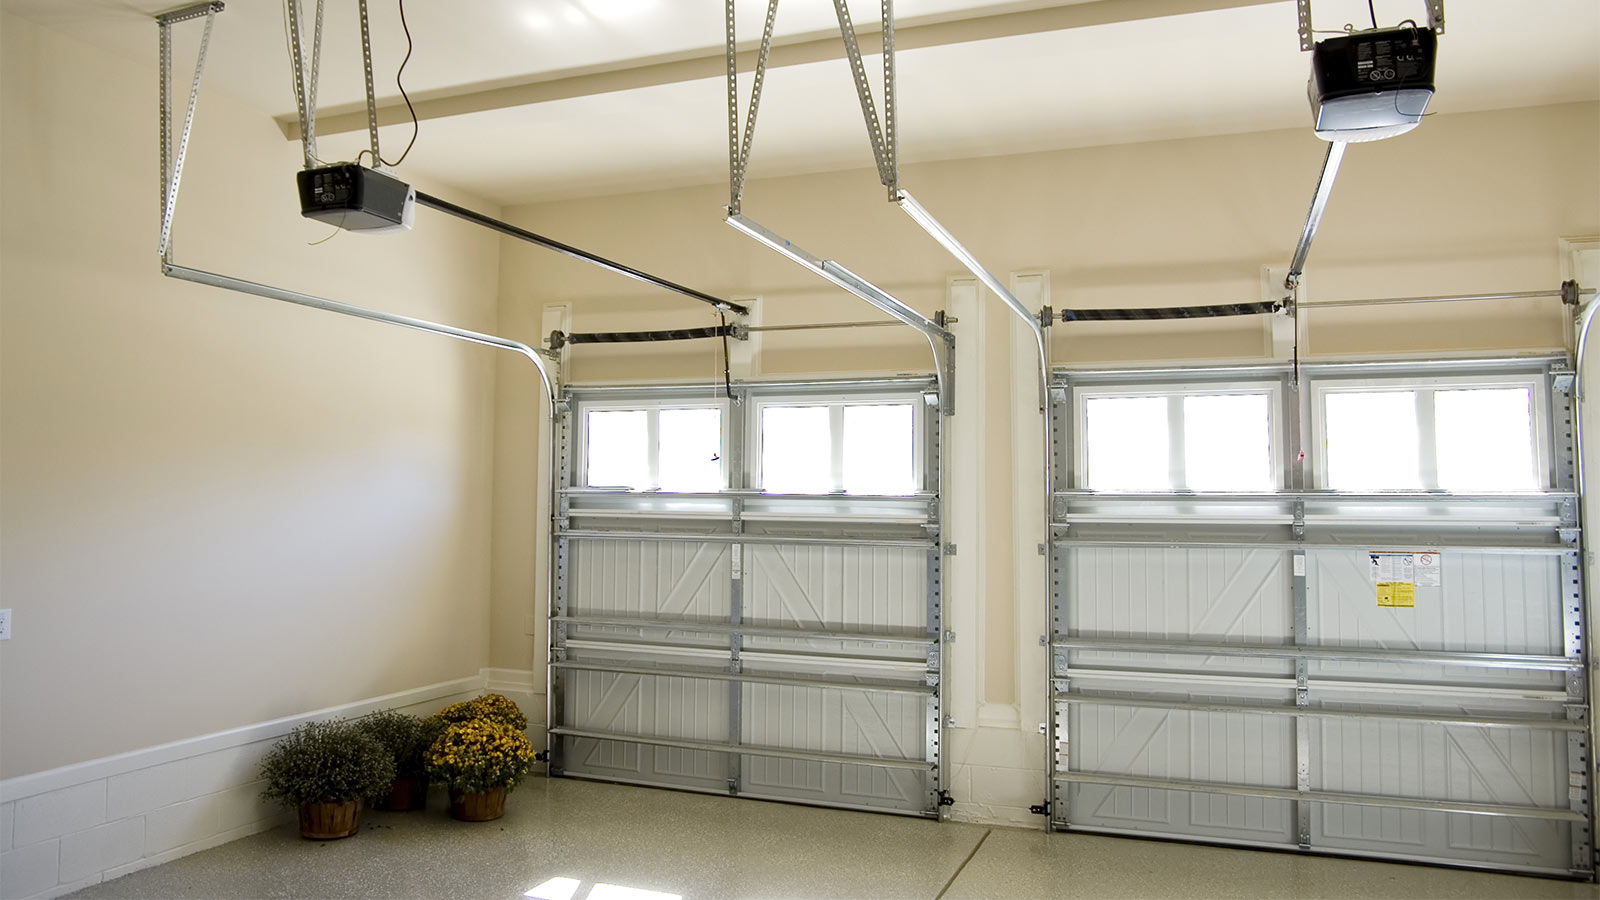 Sectional Garage Doors from Steel Security Doors Maidstone suppliers.